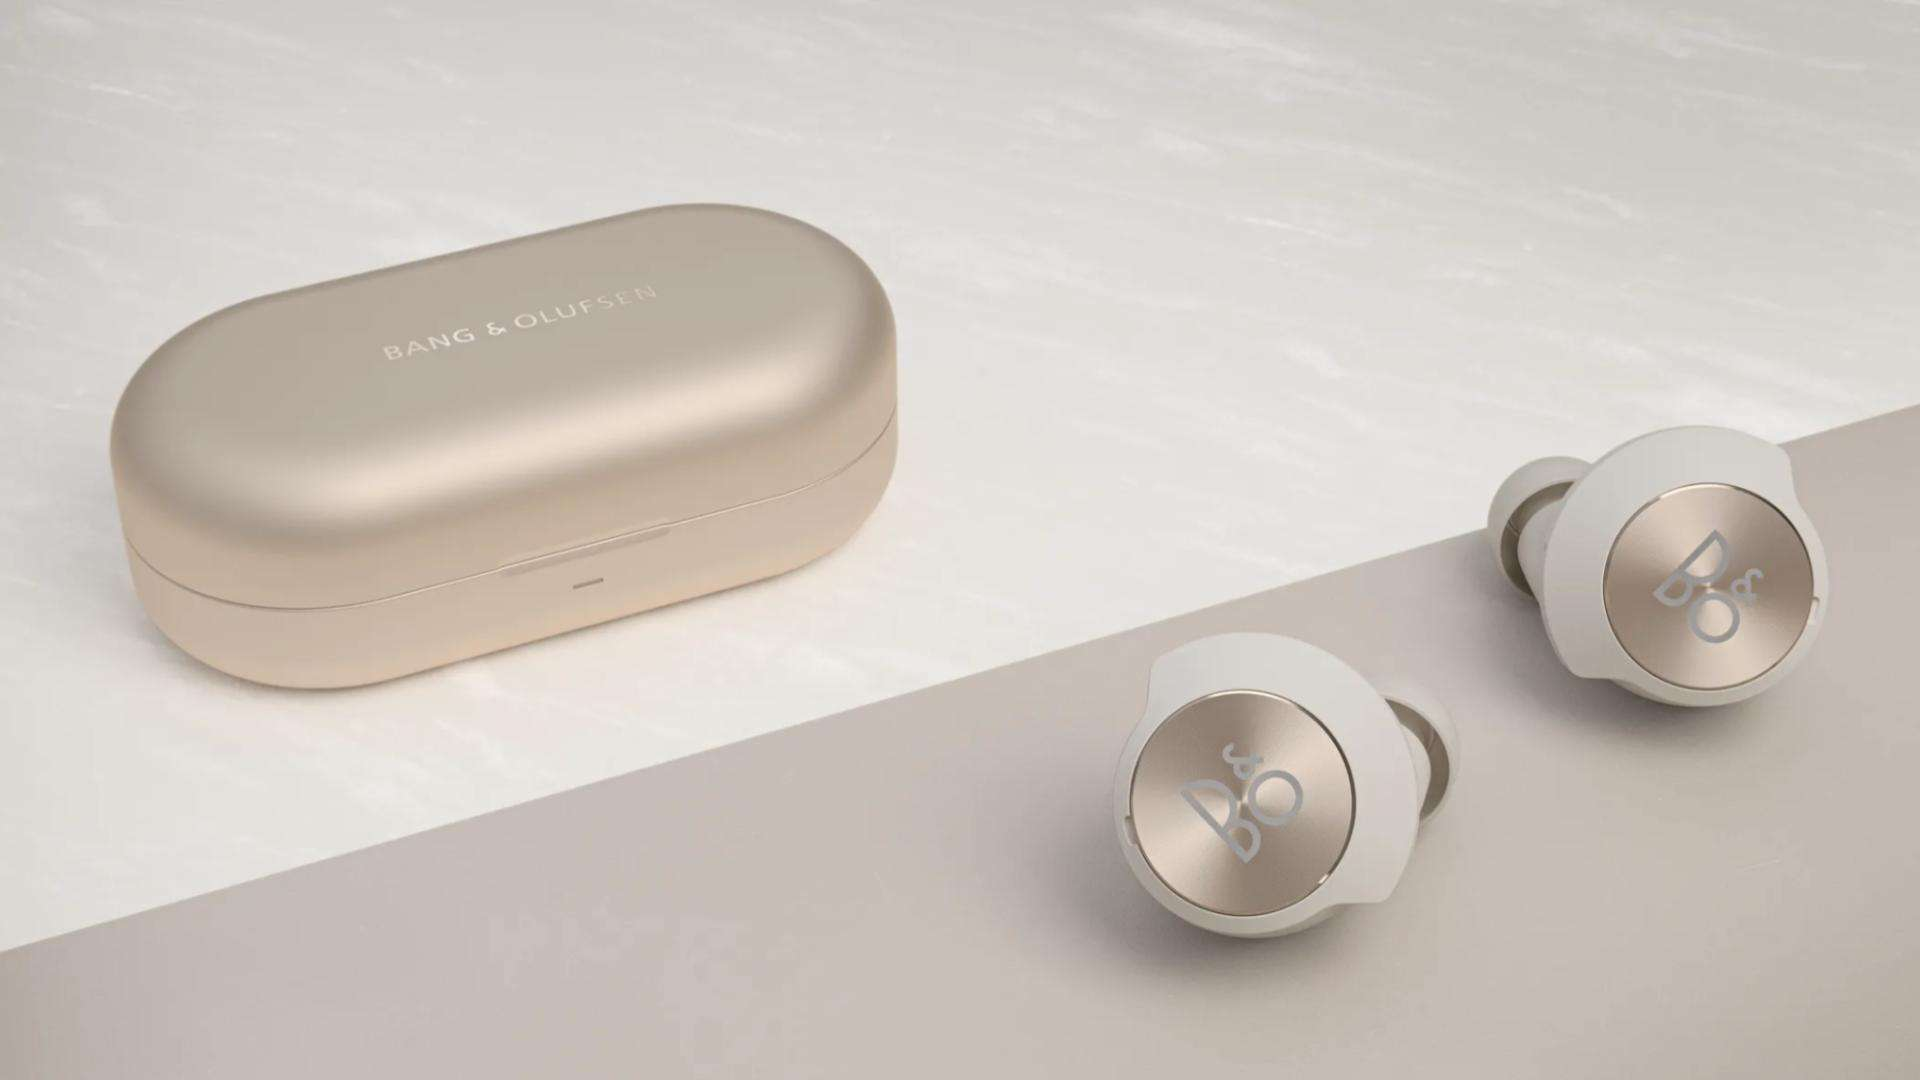 Bang Olufsen Beoplay EQ announcement lifestyle presser in gold